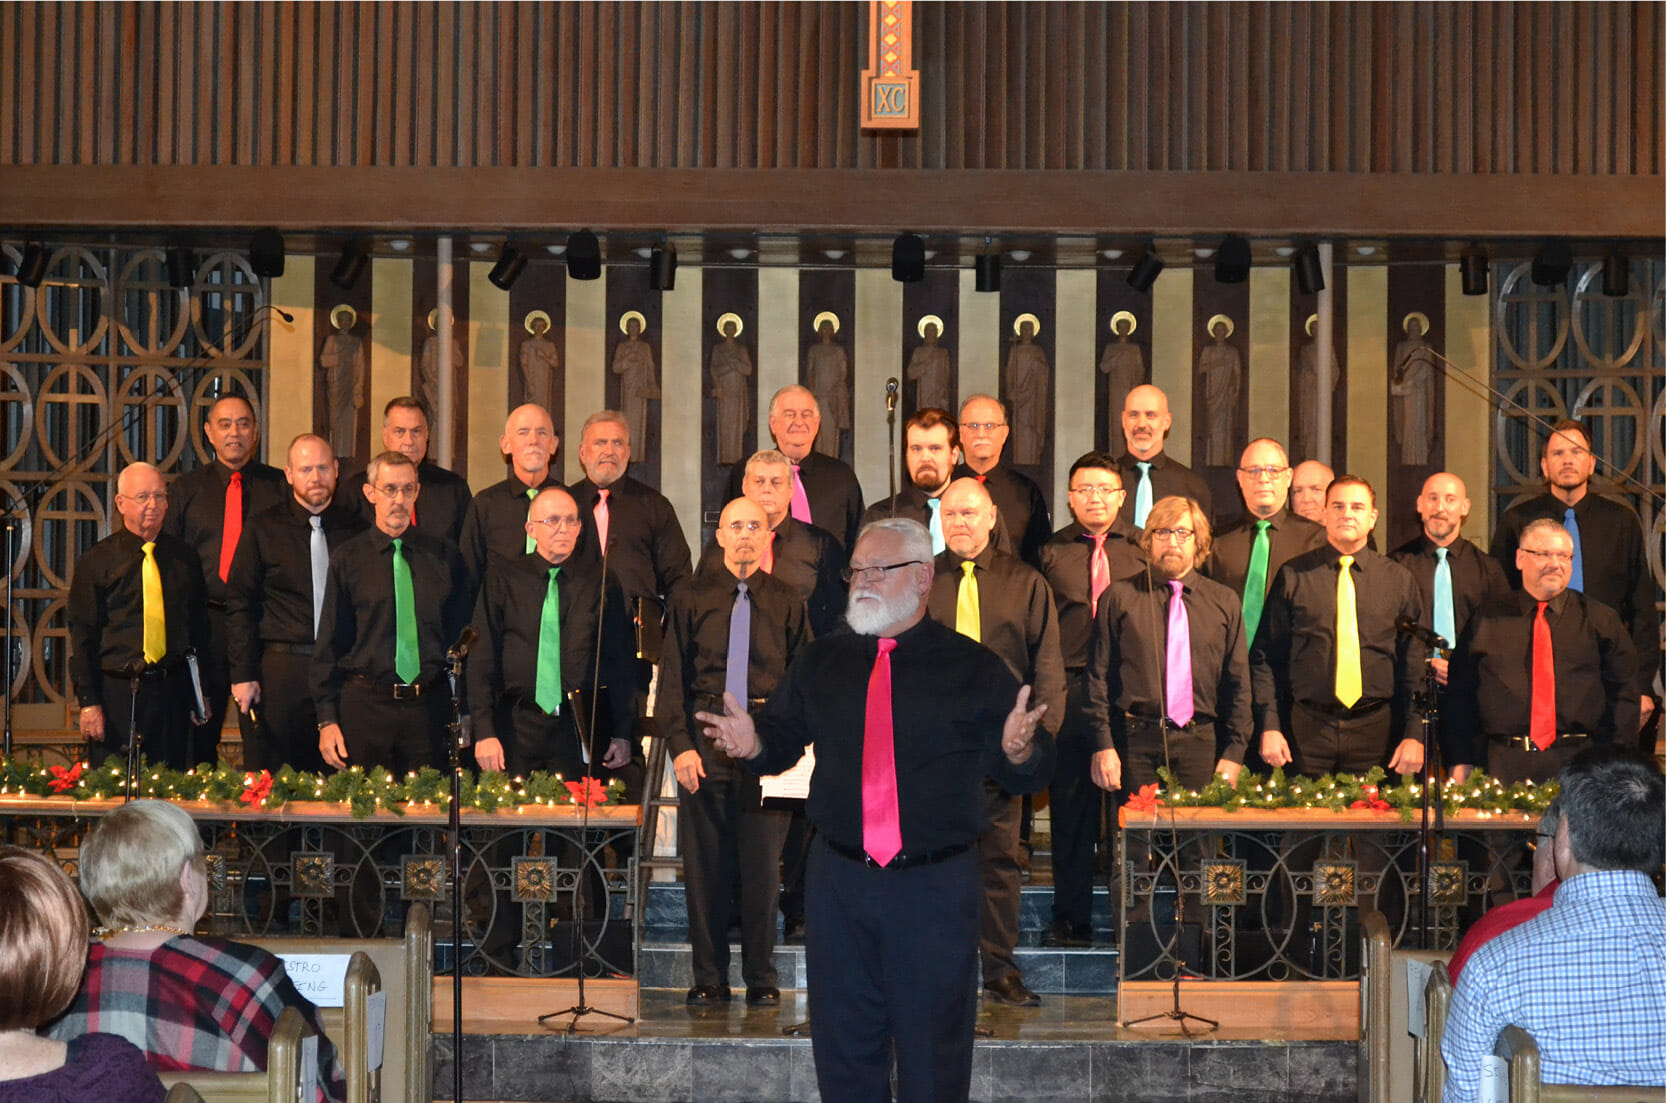 Fort Lauderdale Gay Men' s Chorus Honors Legacy of Matthew Shepard